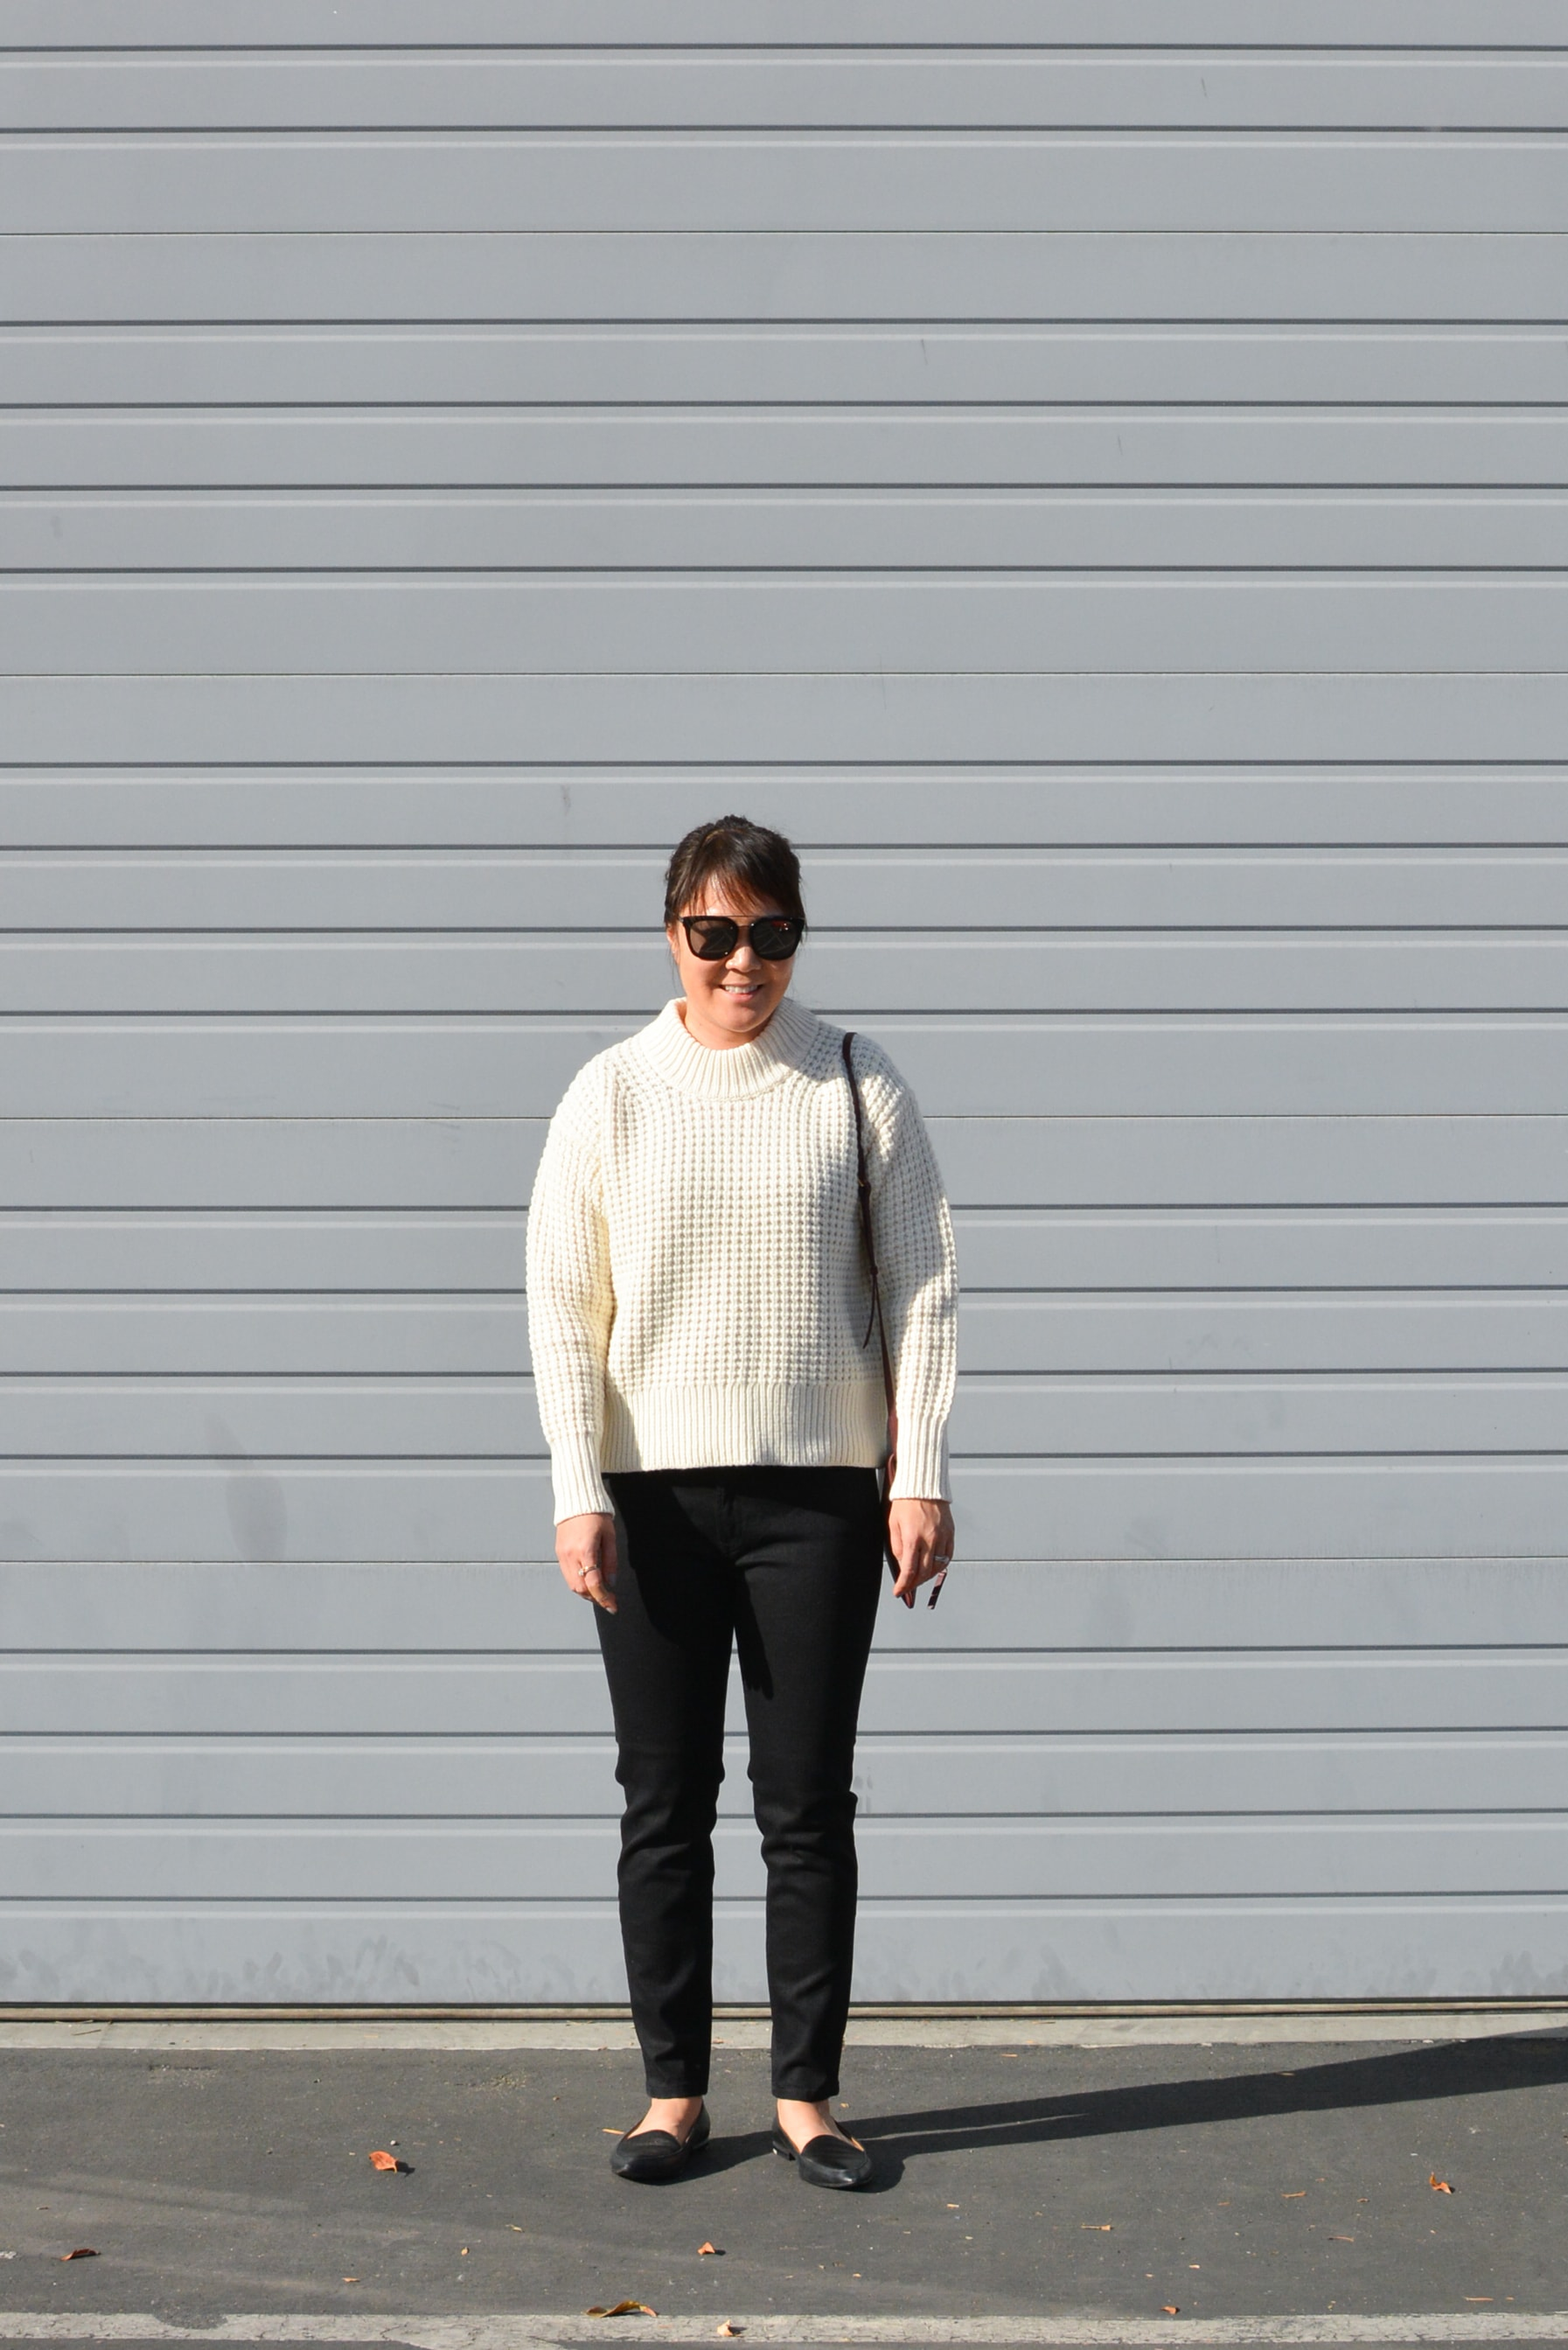 Everlane Review Wool Cashmere Waffle Square Crew Sweater (2 of 5)-min.jpg